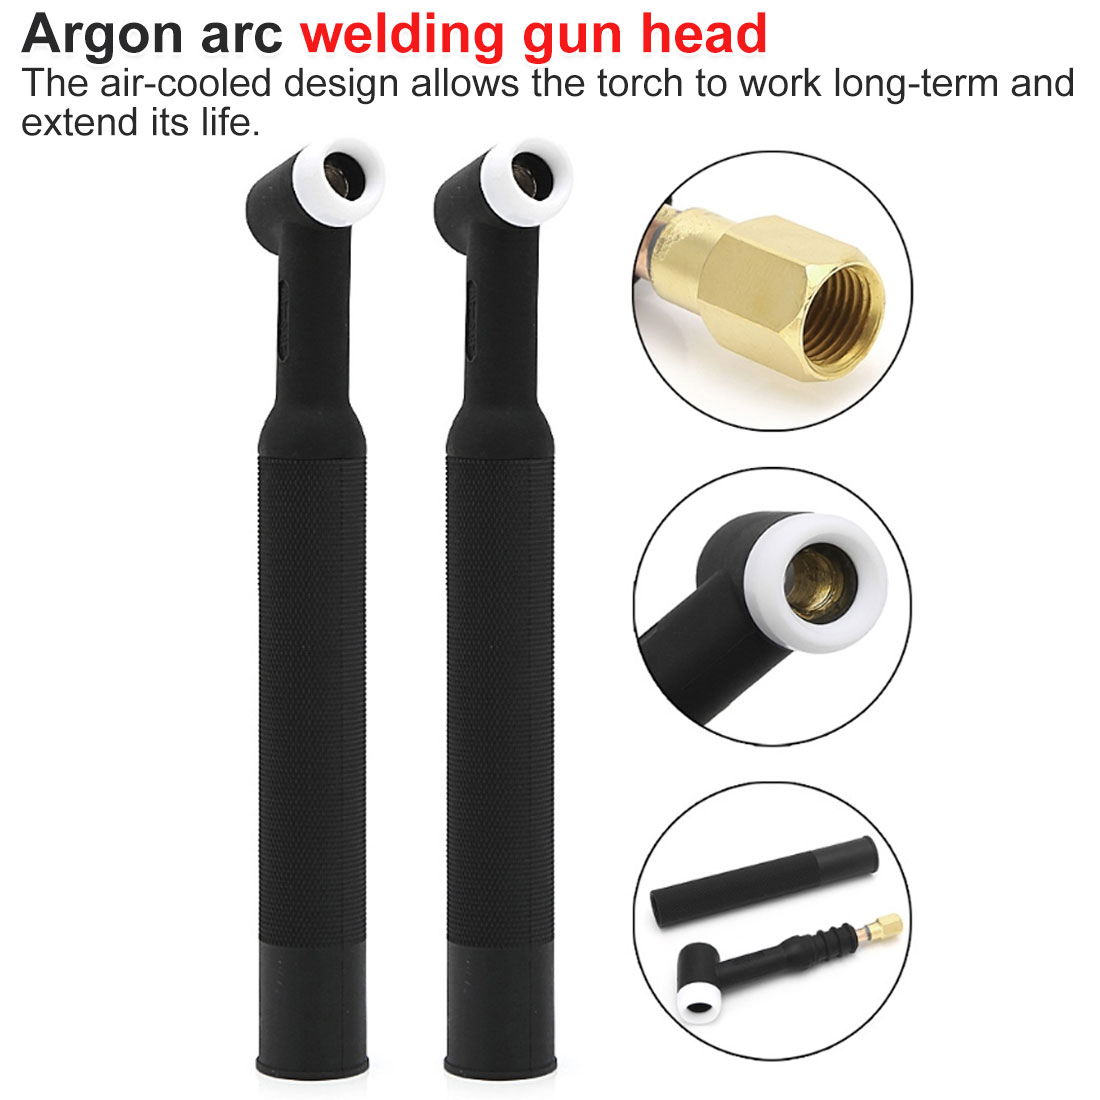 WP-26 TIG Welding Torch Flexible Head Body Air Cooled TIG Welding Accessory